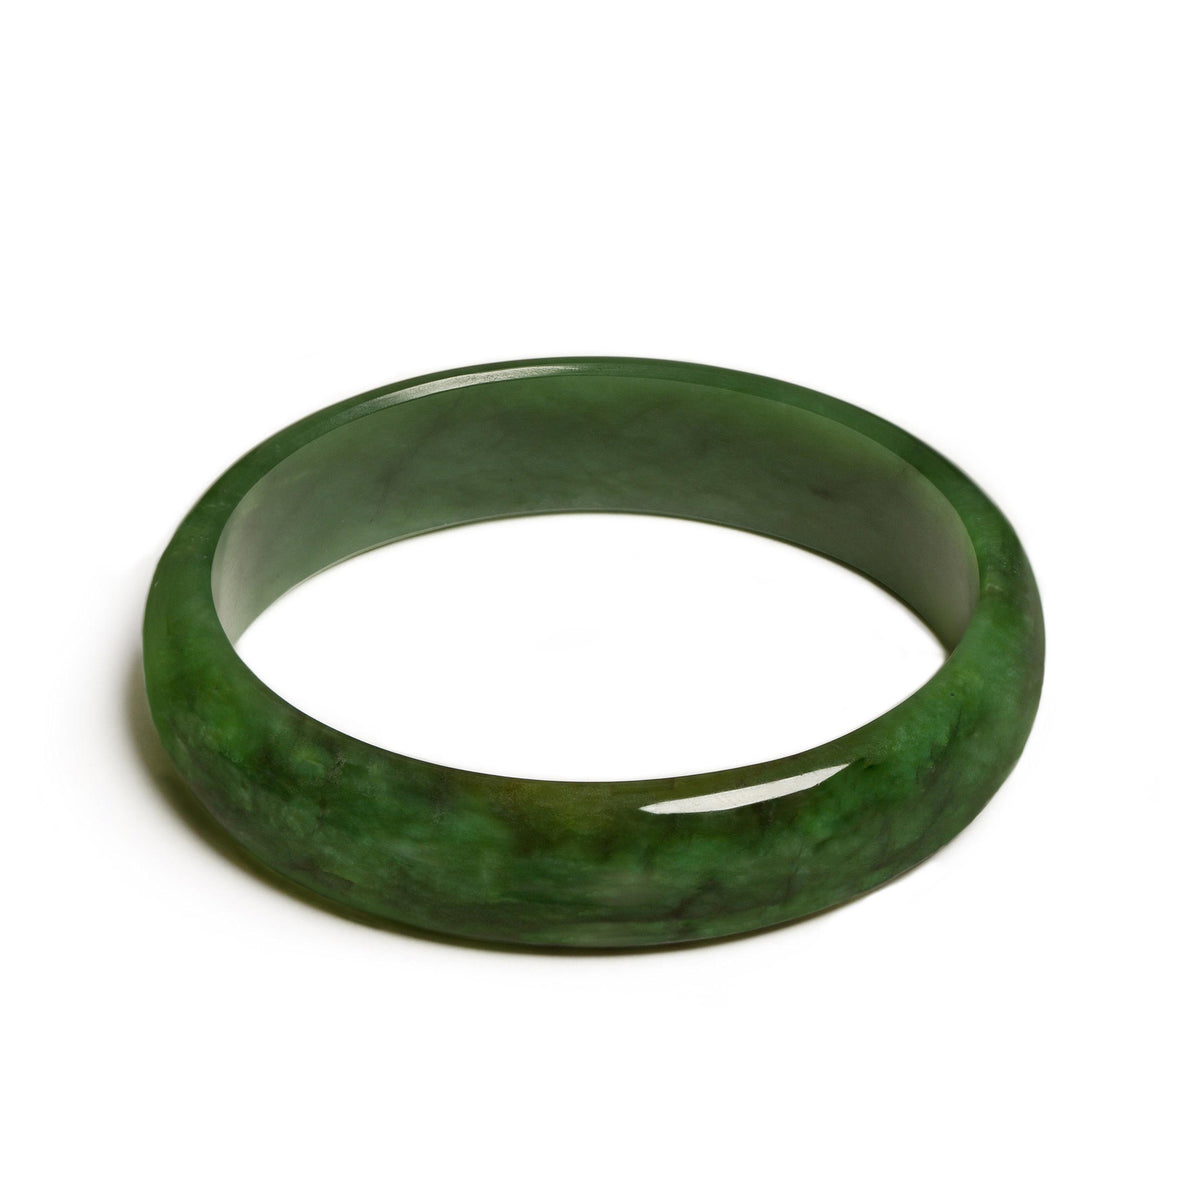 New Zealand Pounamu // RSBAN66-2188 / 66mm (Internal Diameter) x 77mm (External Diameter)